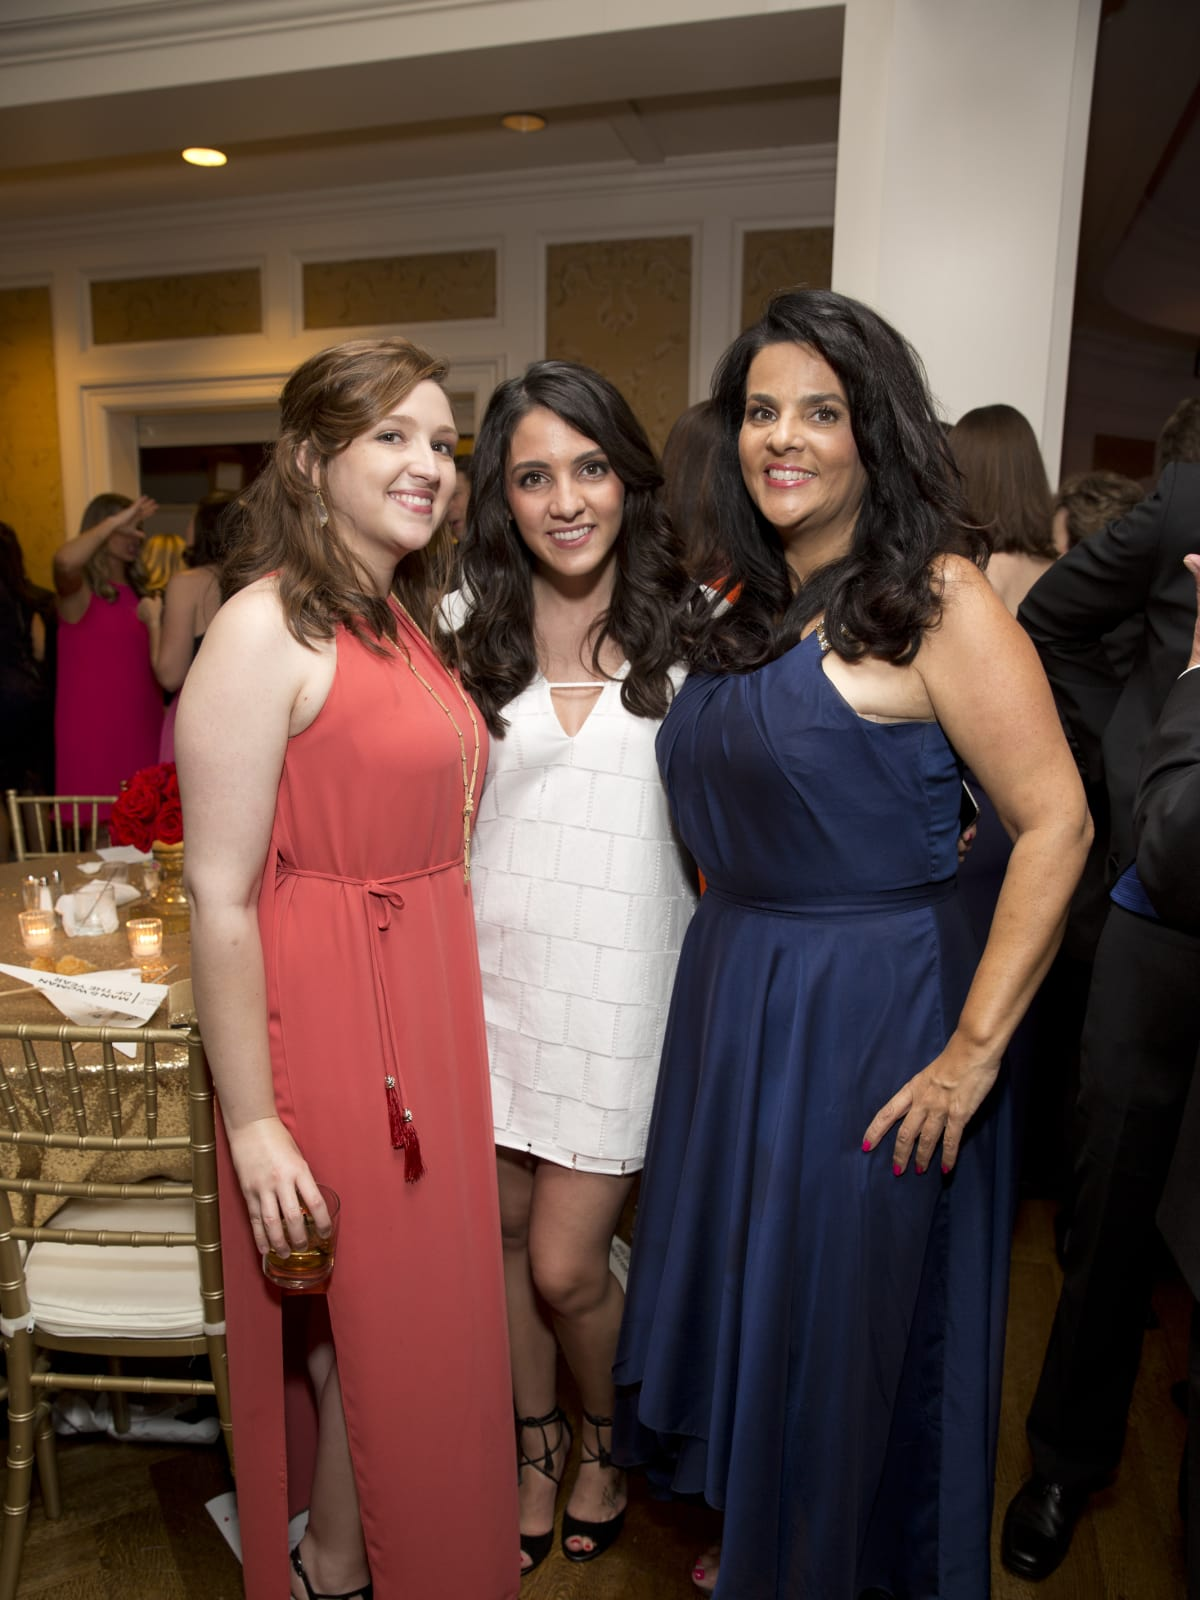 Leukemia & Lymphoma Society gala, 4/16, Chelsea Moriarty, Erica Moriarty, Inez Moriarty